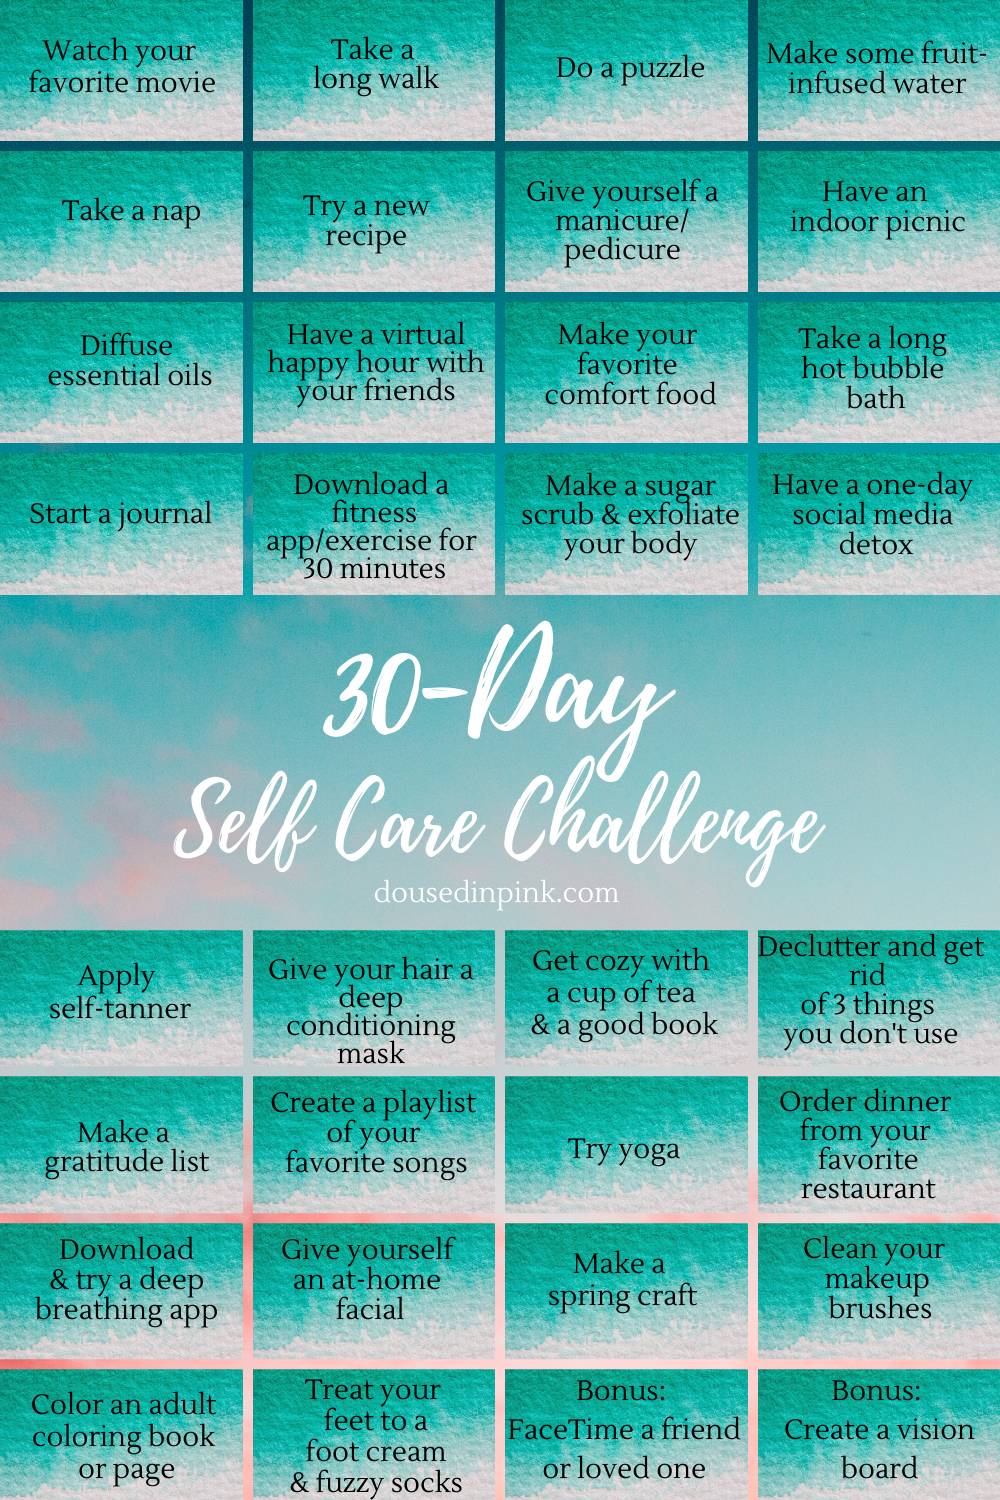 30-Day Self Care Challenge